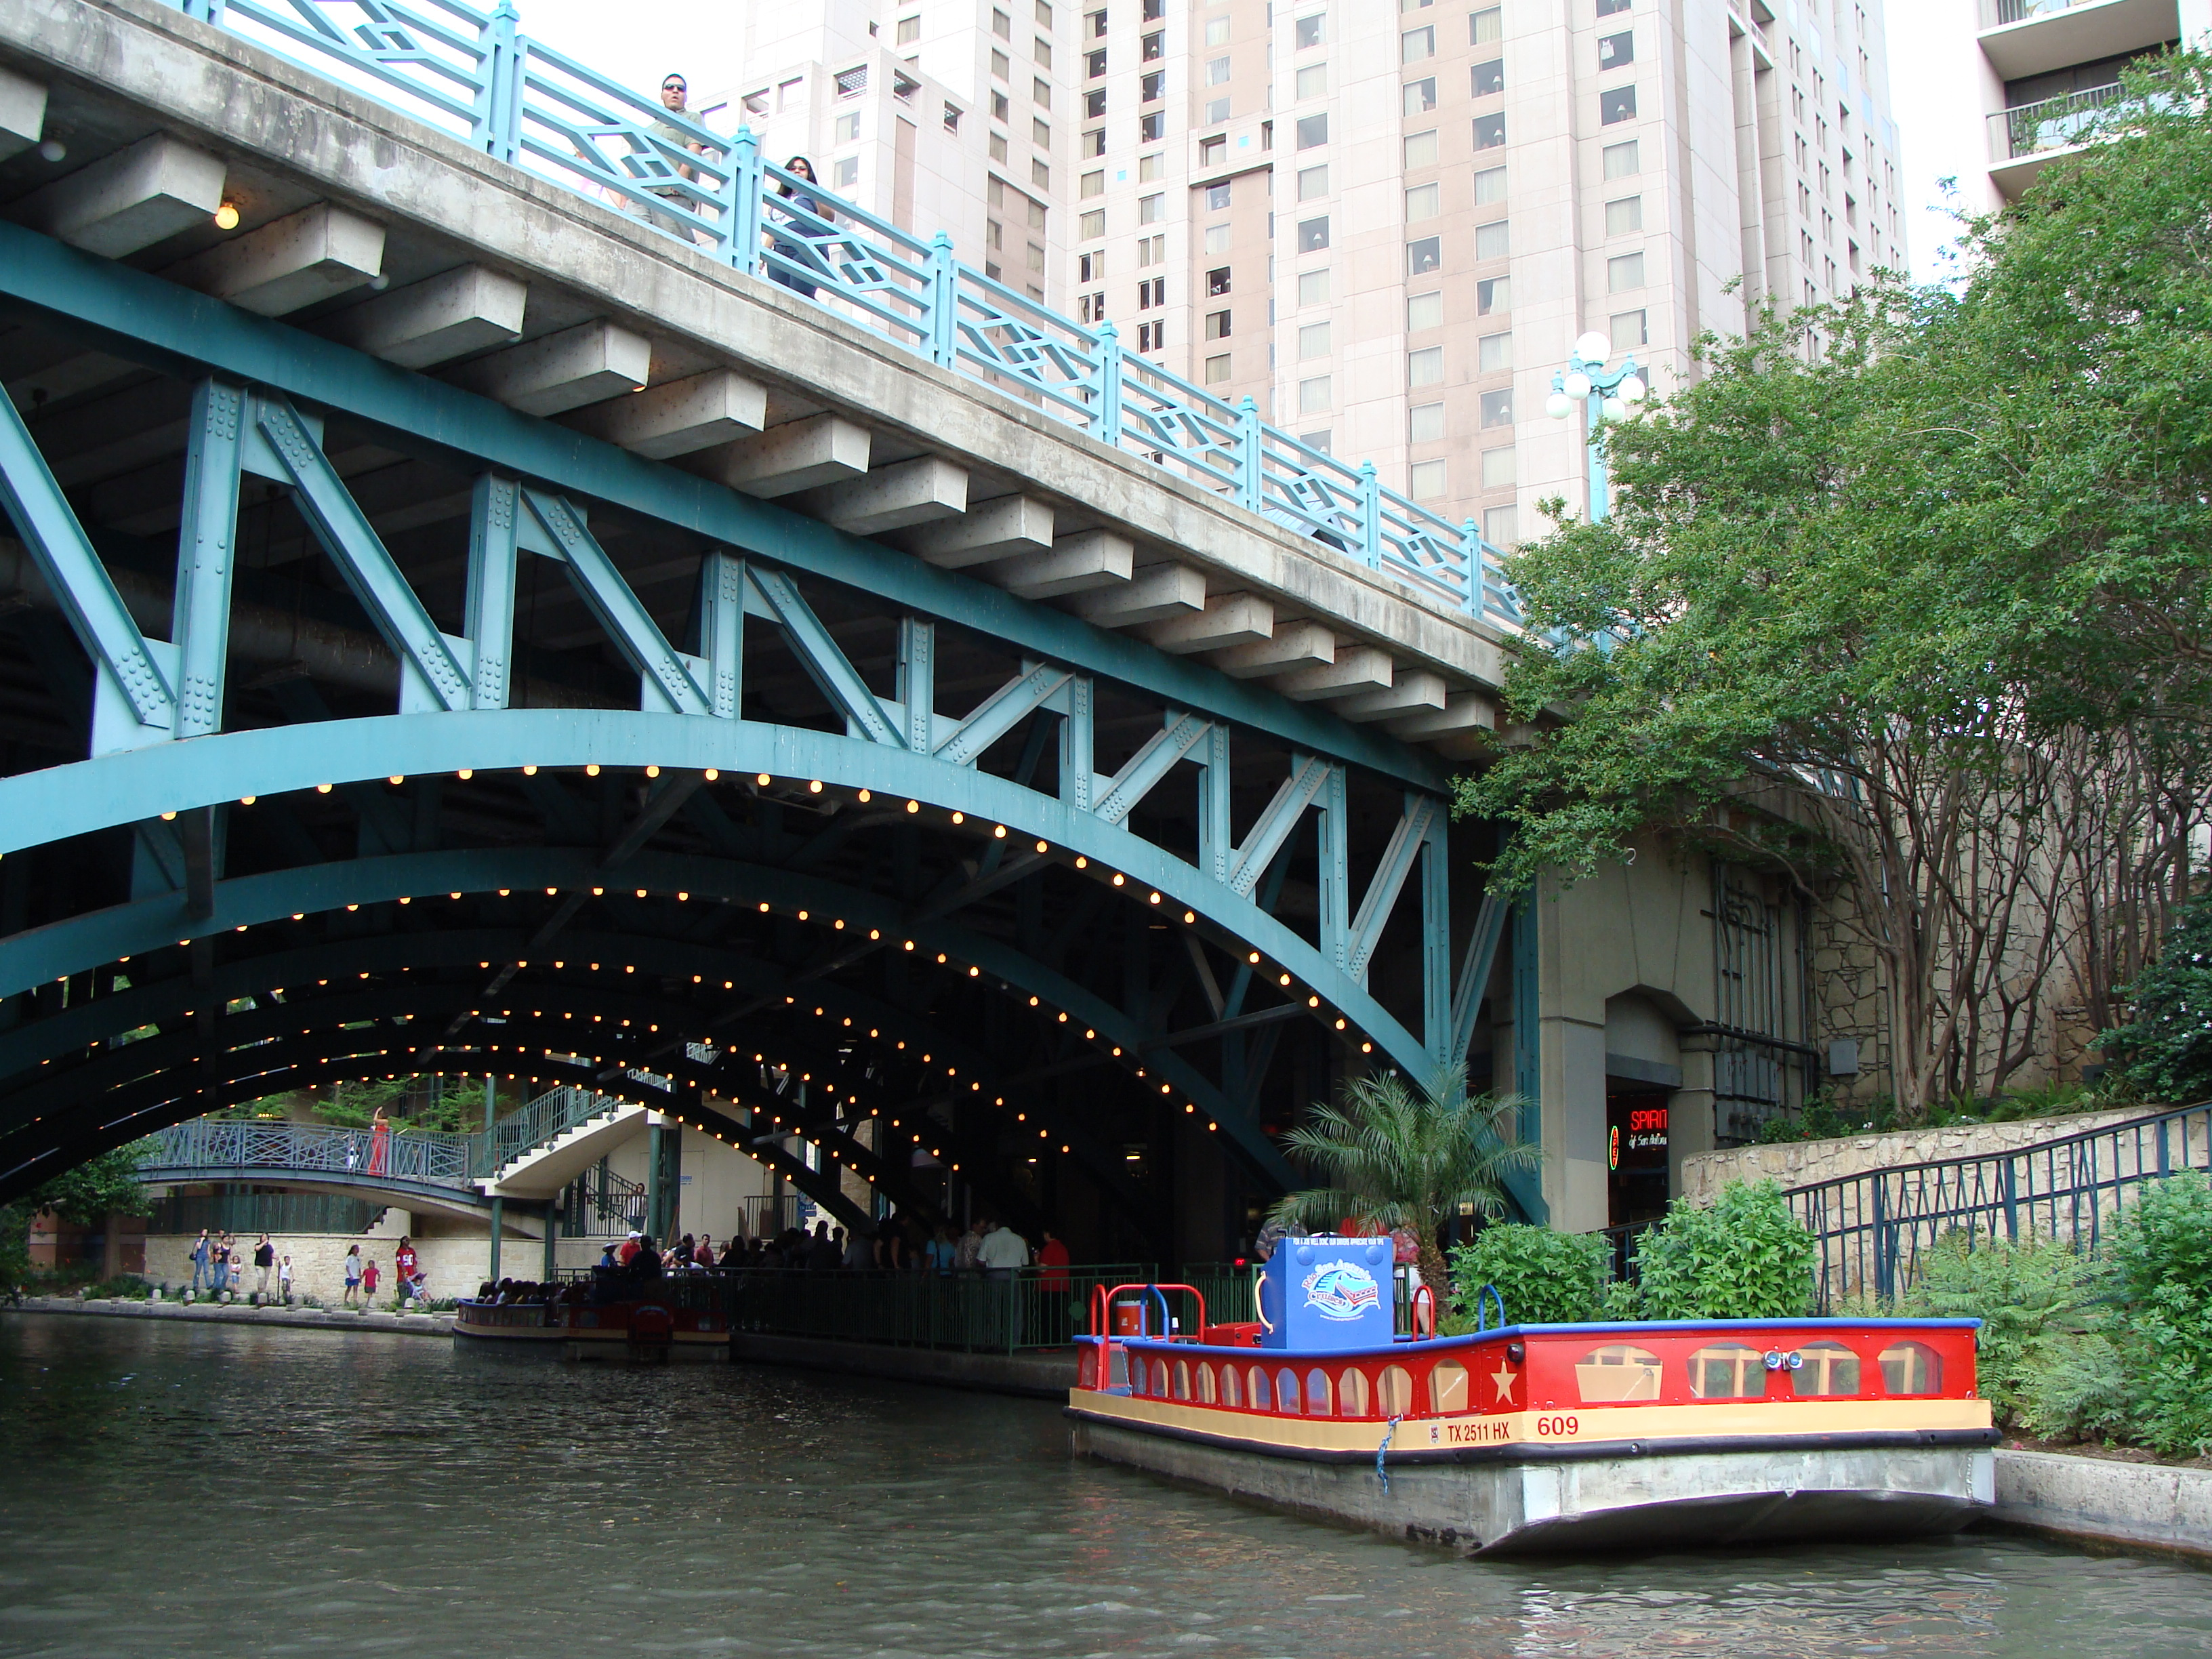 Riverwalk photo